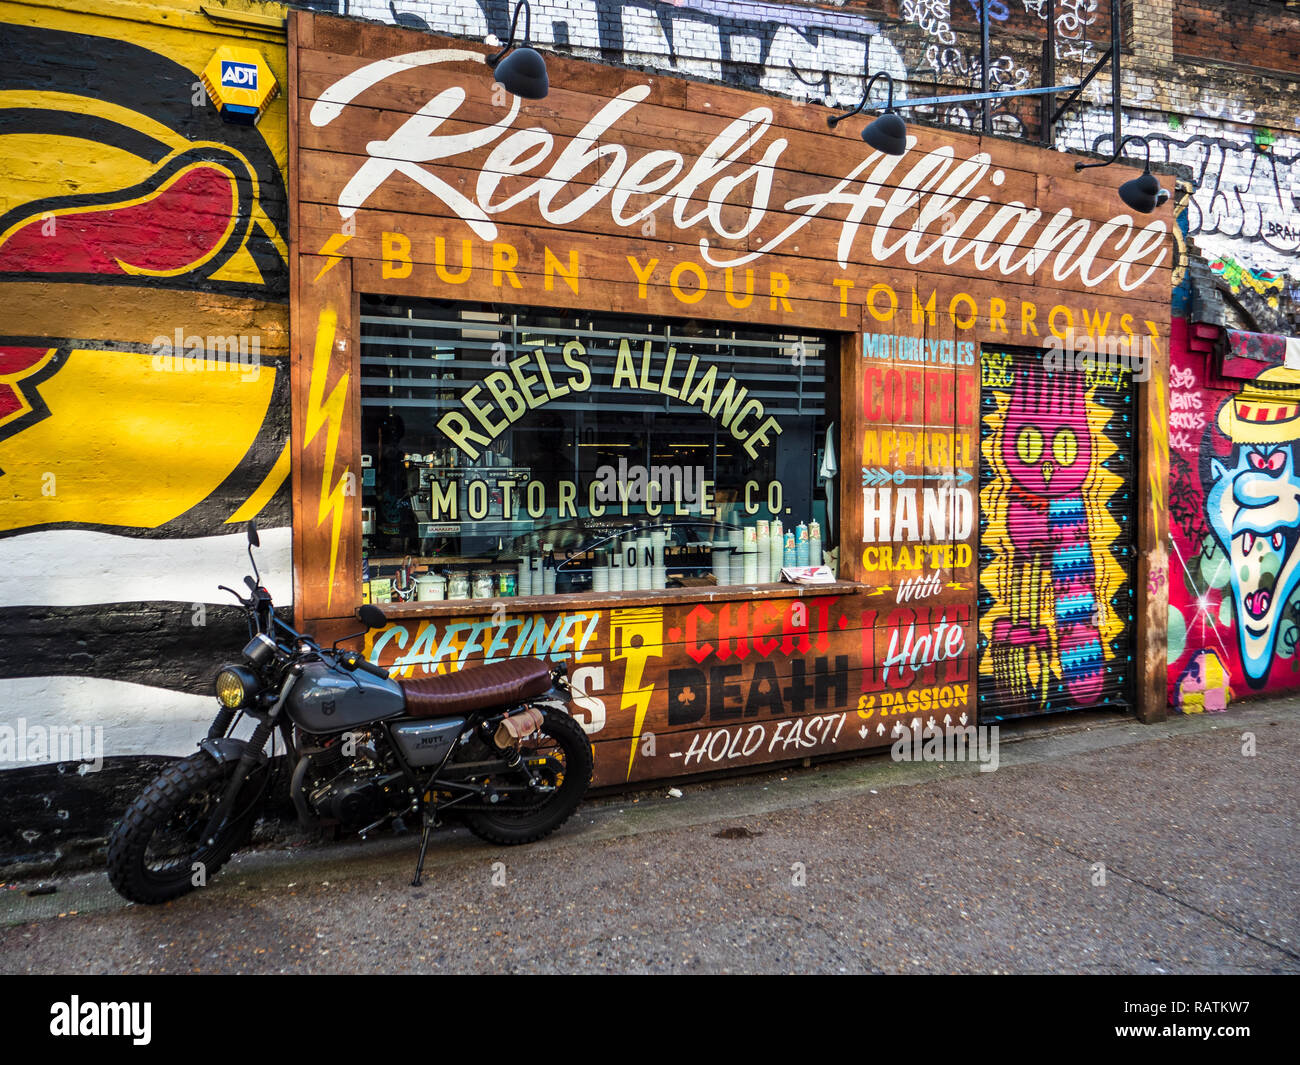 Rebels Alliance Motorcycles, clothes and Coffee Shop in hip Shoreditch East London near Brick Lane. Custom Made motorcycles. - Stock Image